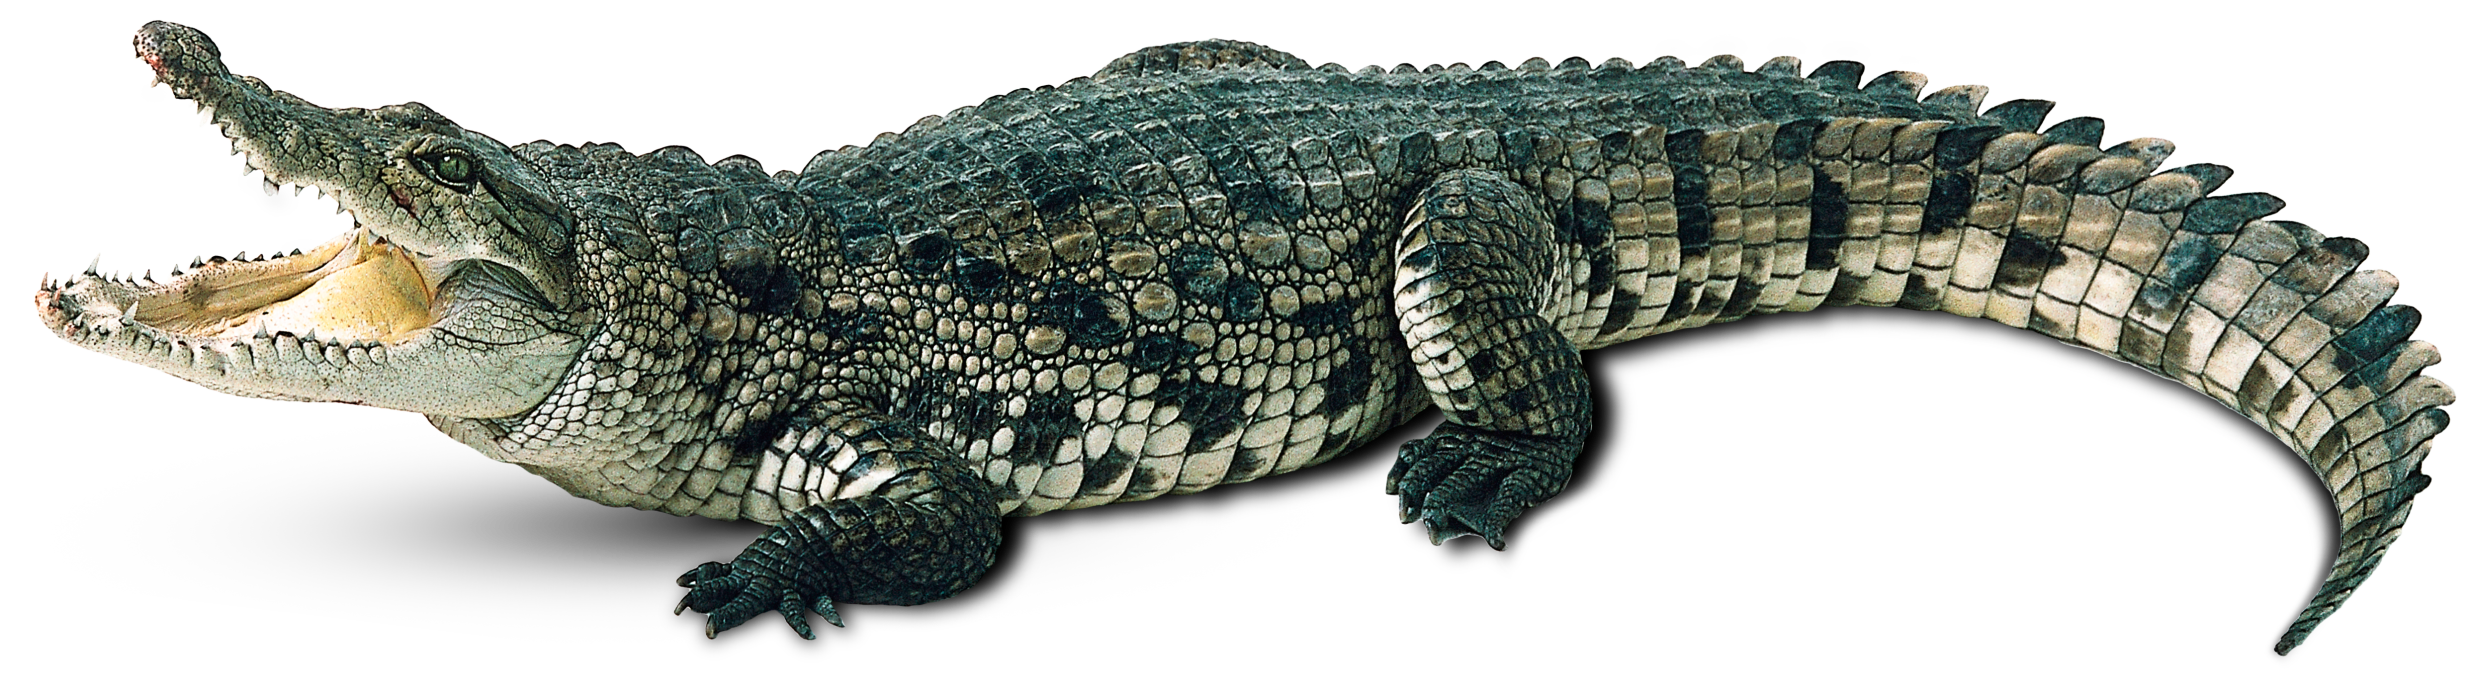 Gator clipart great. Crocodile png transparent images